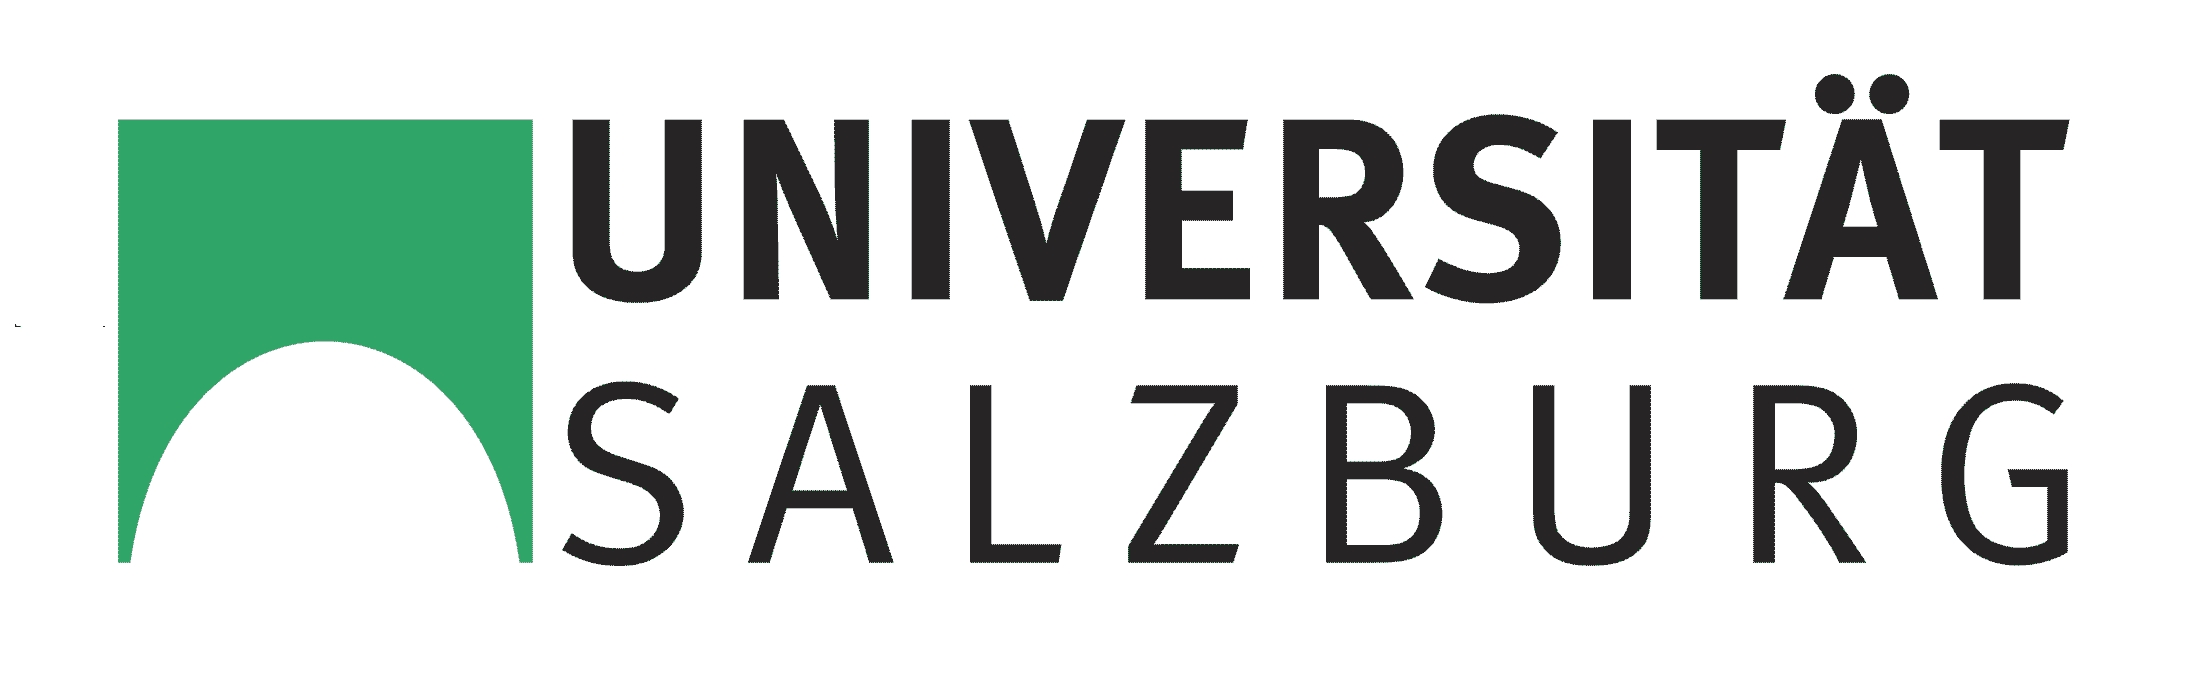 Universität Salzburg, Vizerektorat Forschung / Forschungsmarketing & Citizen Science